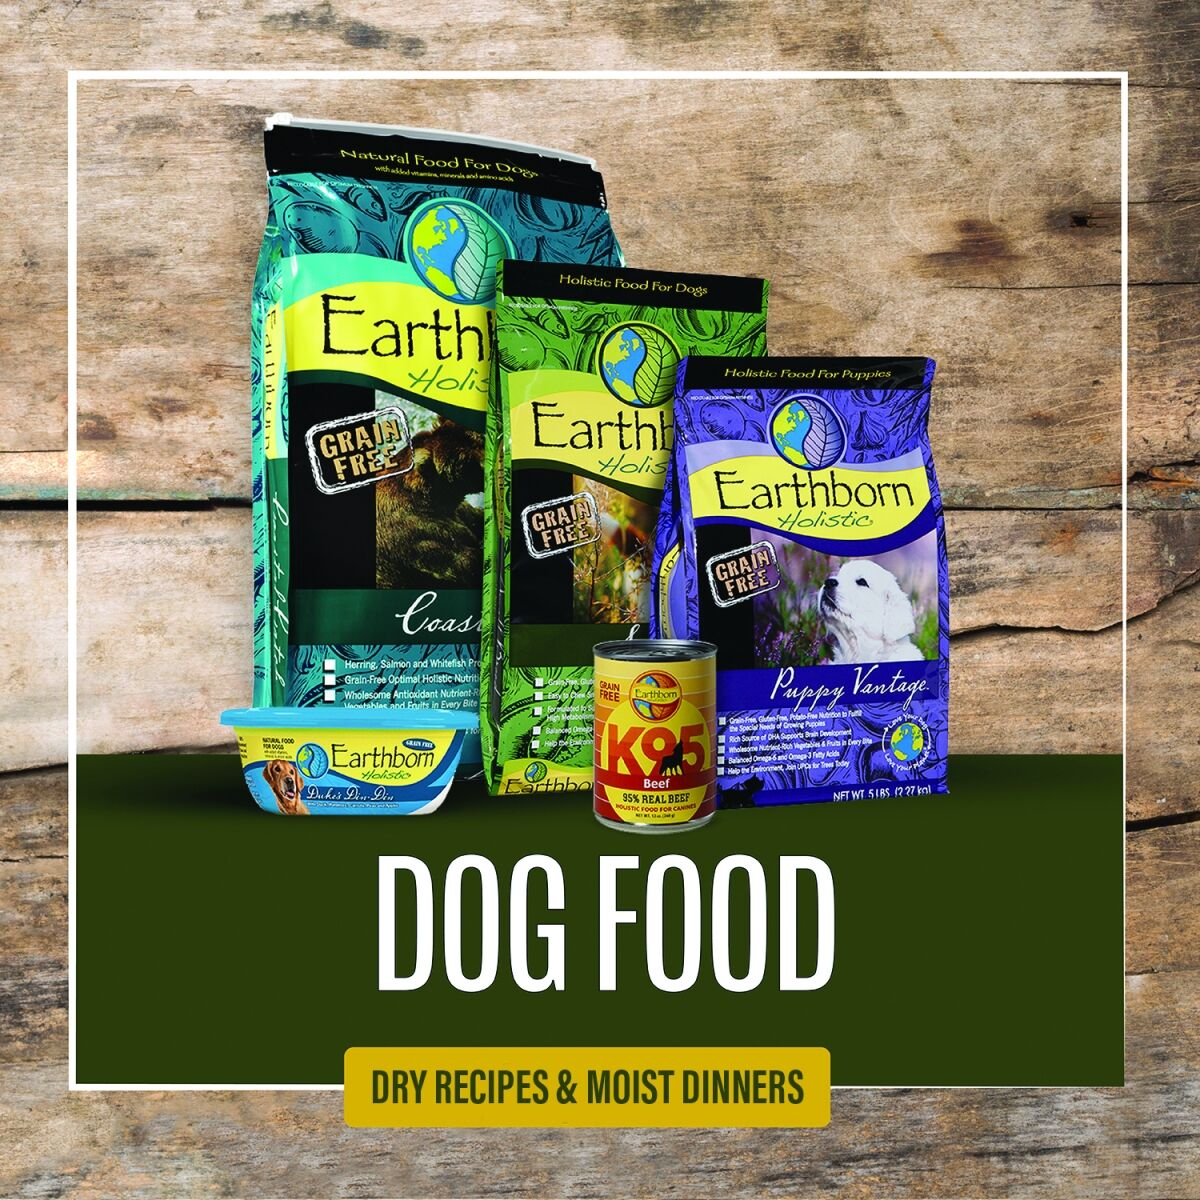 How Midwestern Pet Foods Supports Pets, Indie Retailers and the Planet